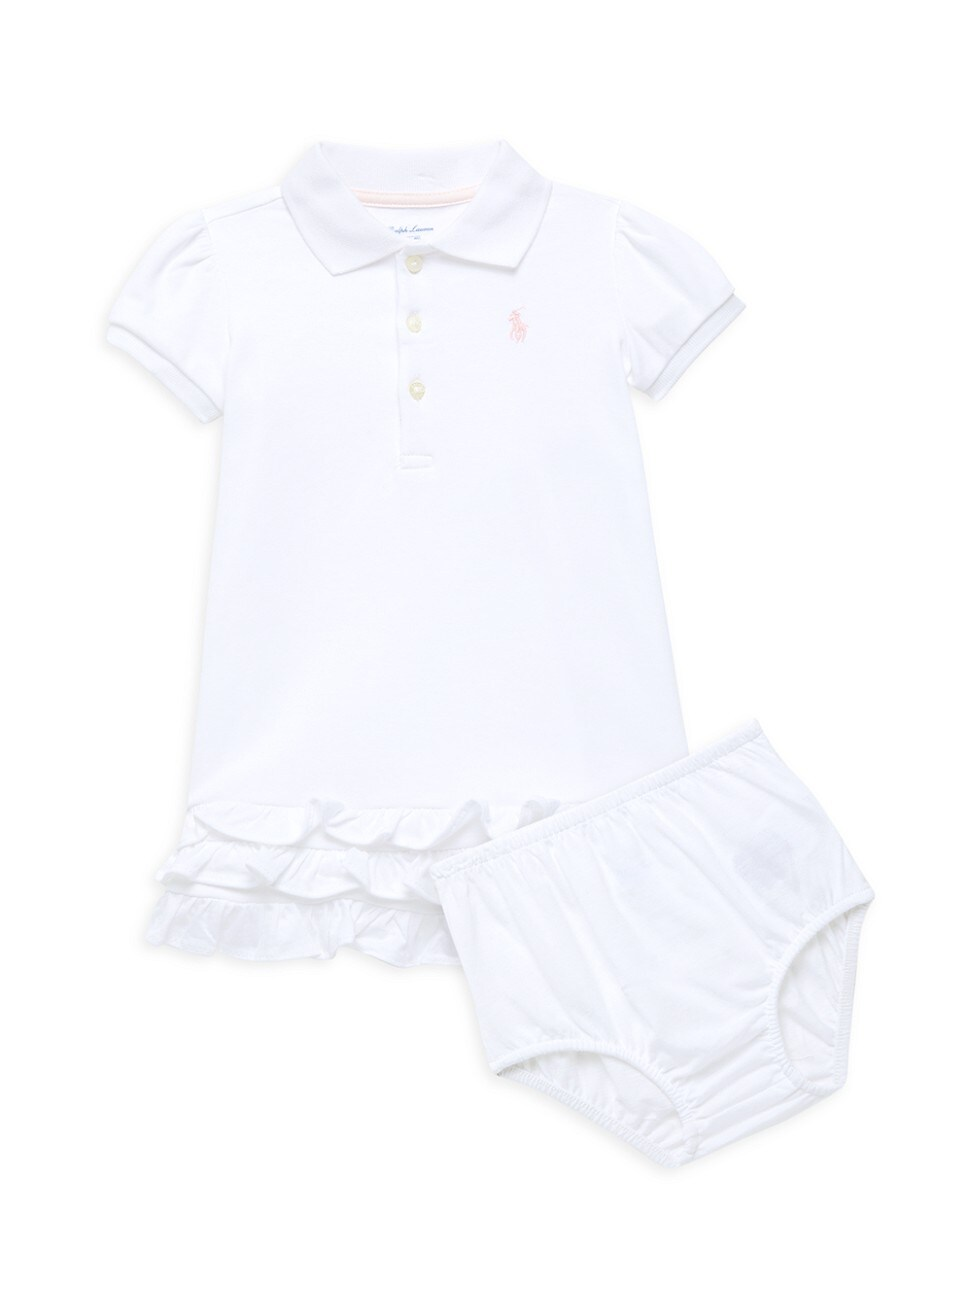 RALPH LAUREN BABY GIRL'S CUPCAKE POLO DRESS